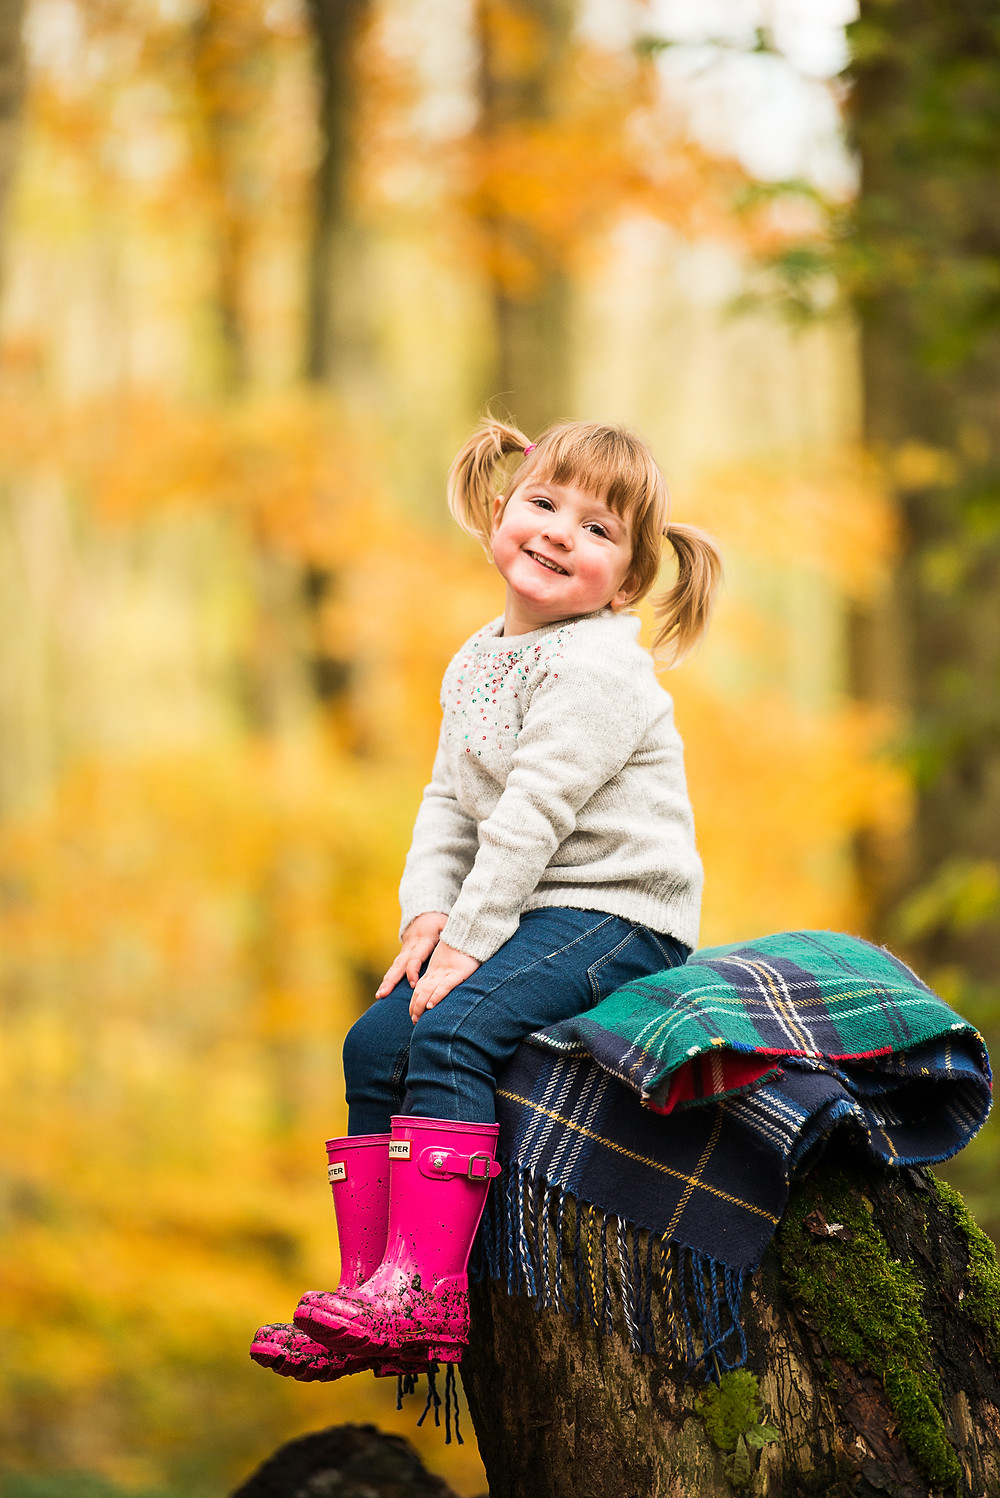 best-aberdeen-family-photographer-natural-light-lifestyle-outdoor-autumn-fall-smiling-girl